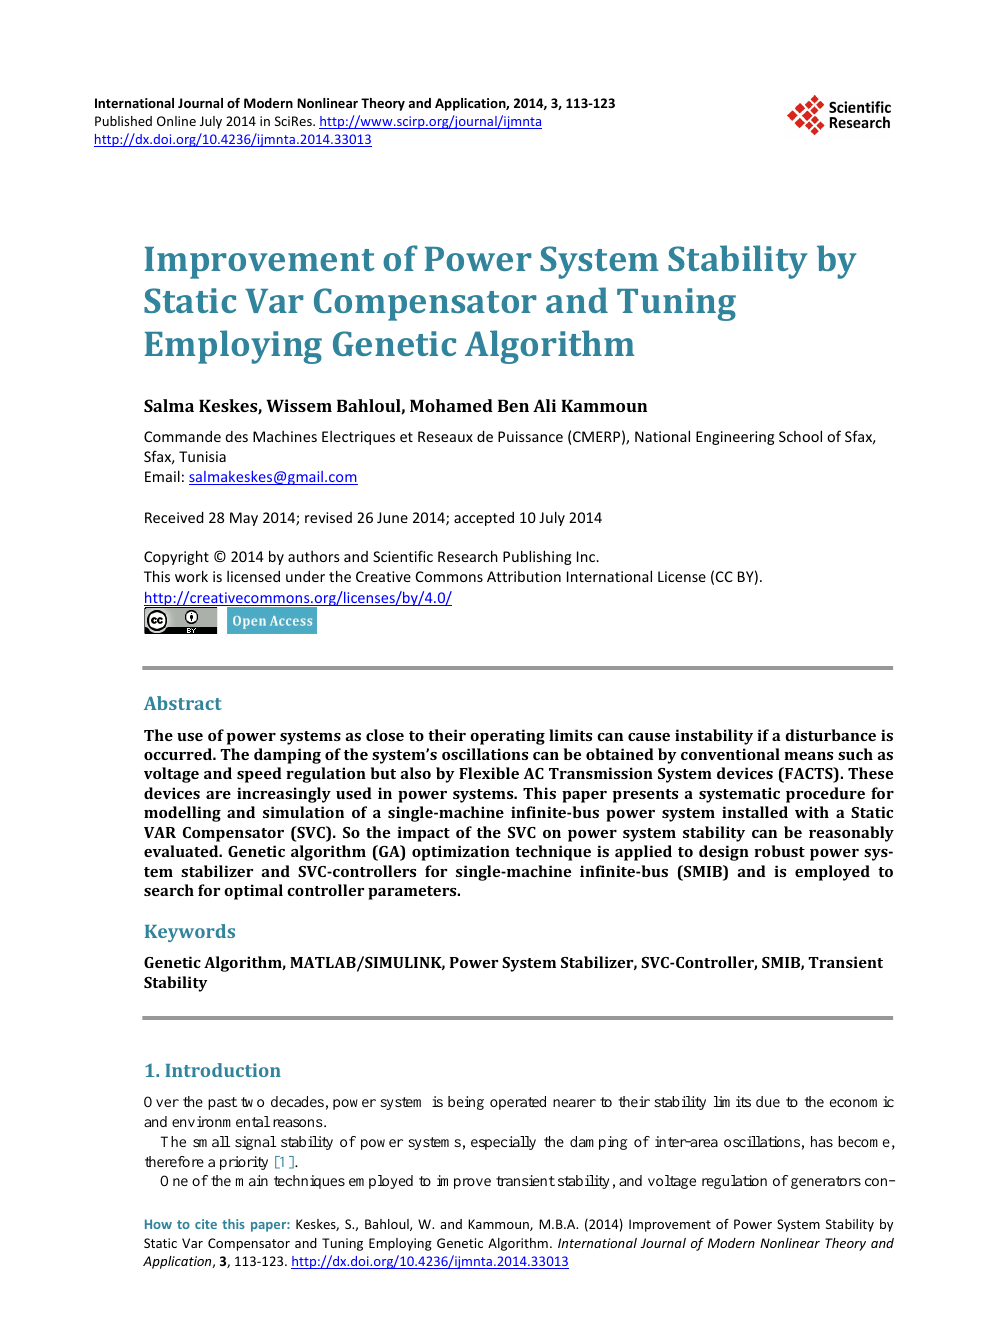 Improvement of Power System Stability by Static Var